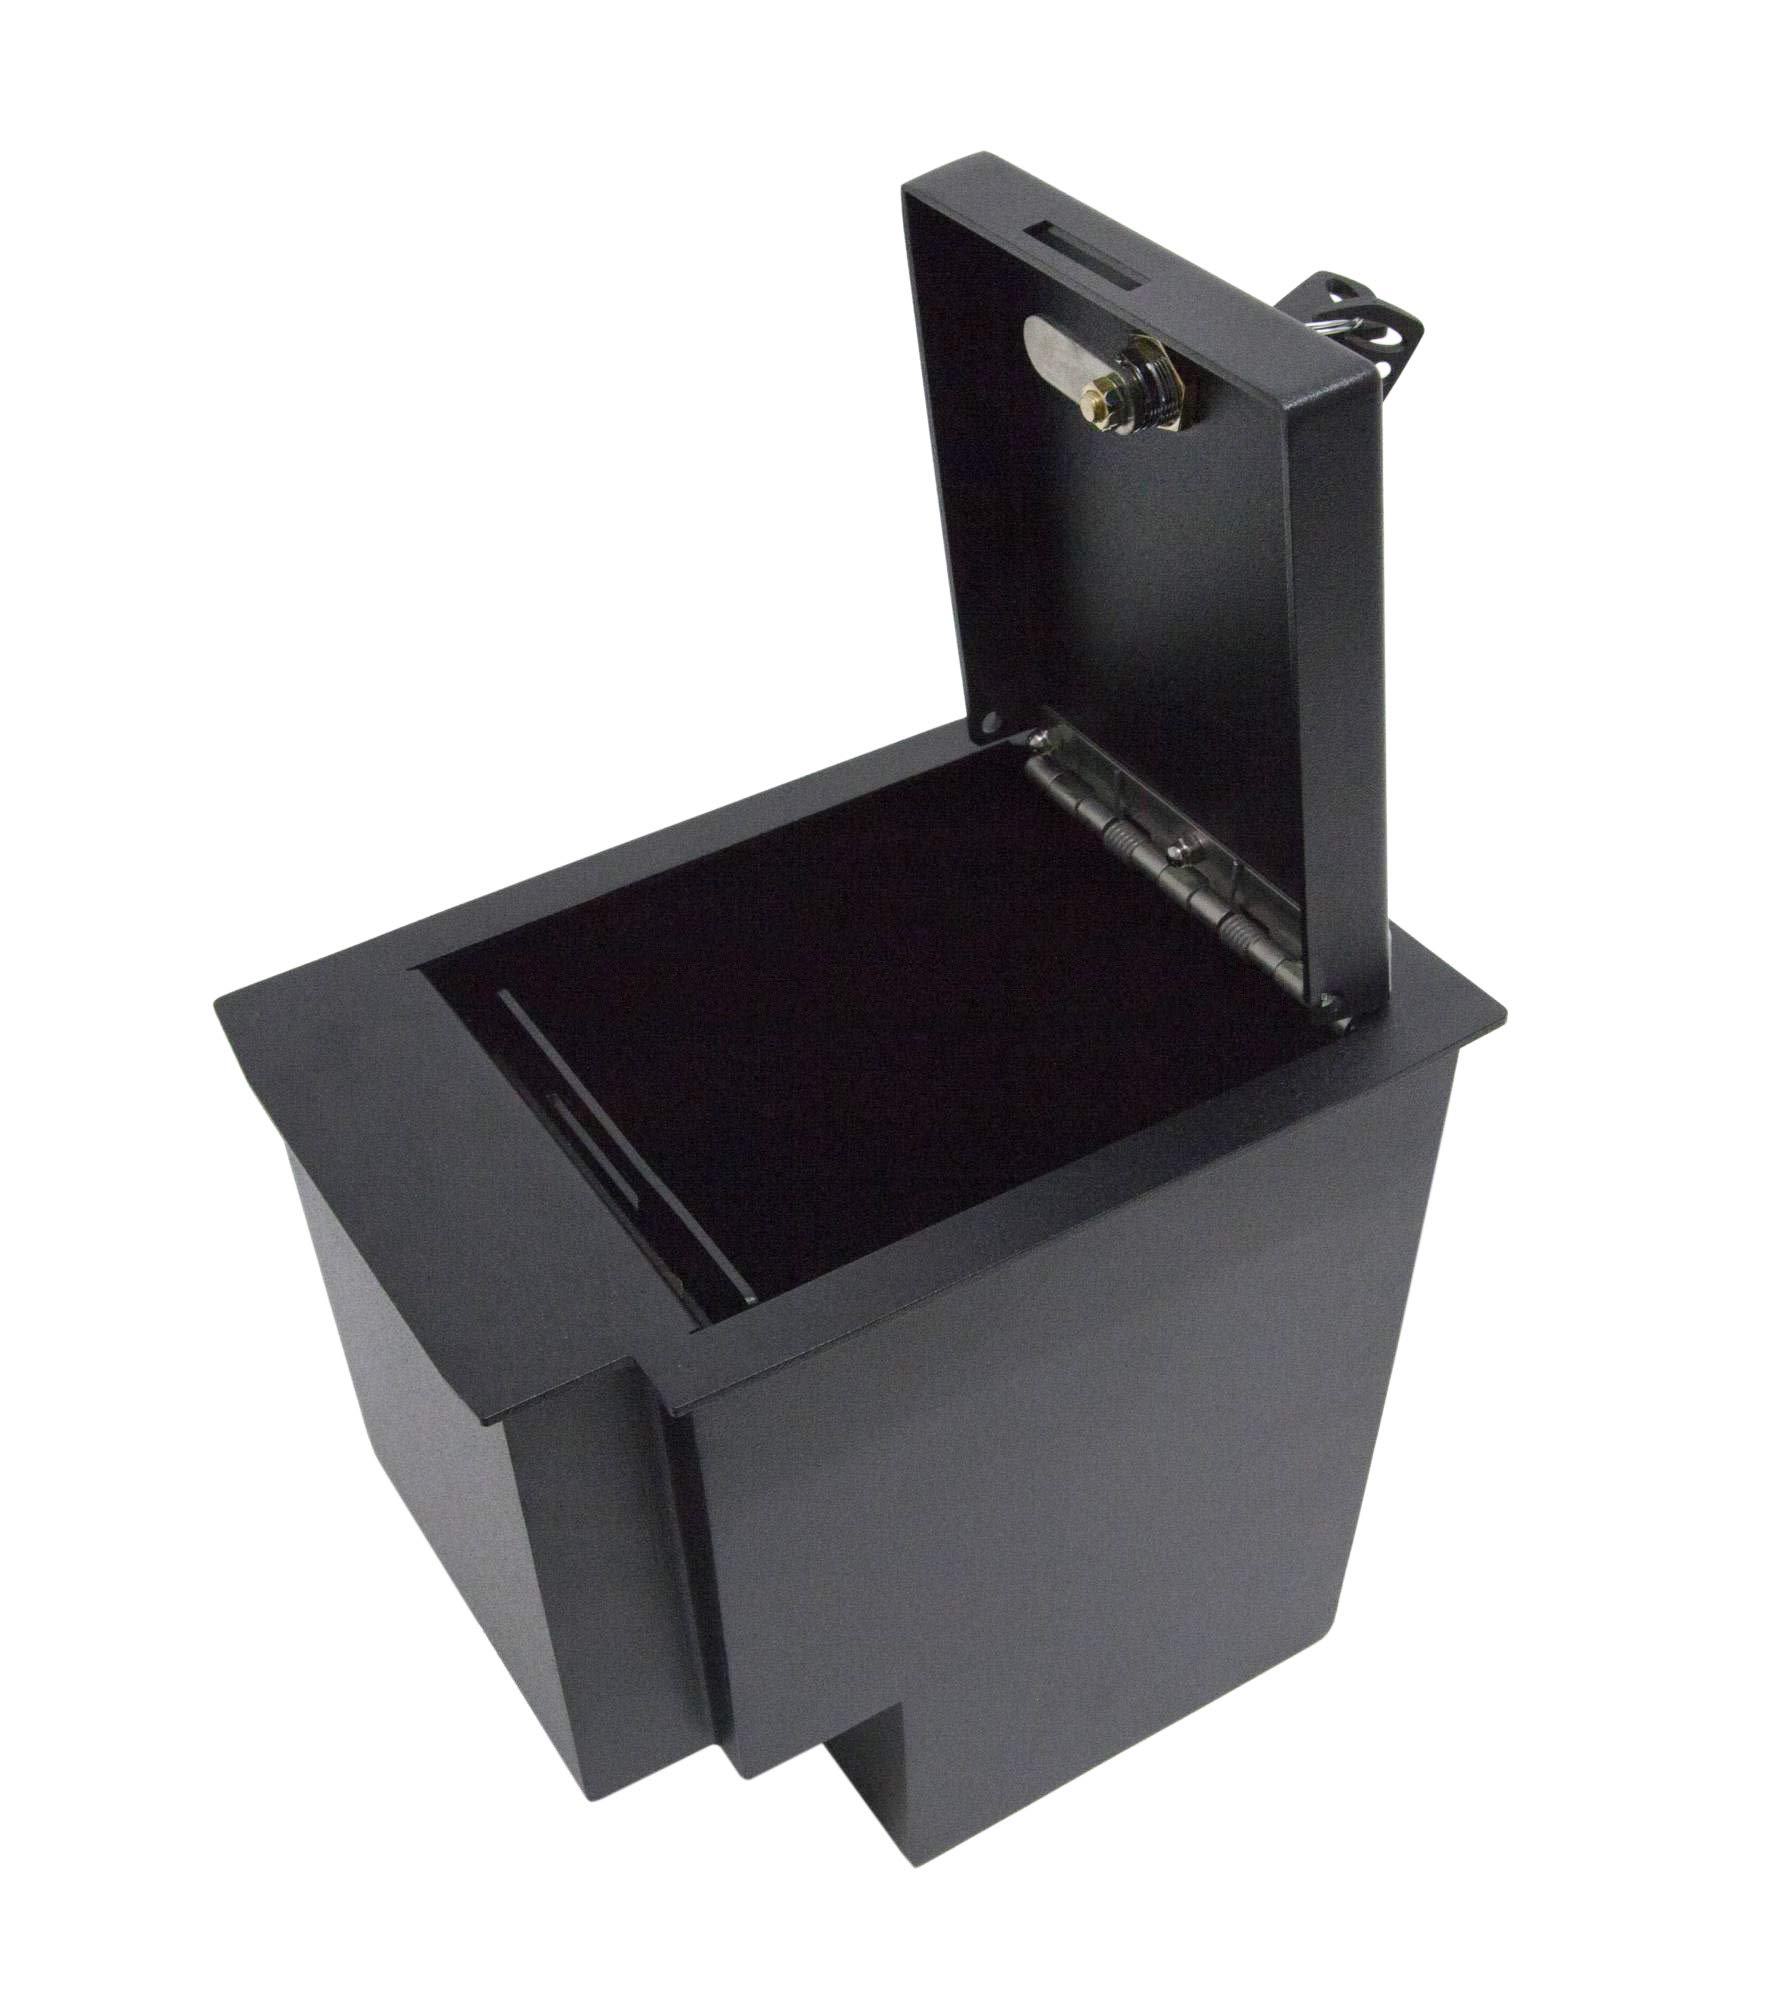 Lock'er Down Console Safe with 4 Digit Combo, Works with 2010 - 2019 Toyota 4Runner by Lock'er Down® (Image #2)